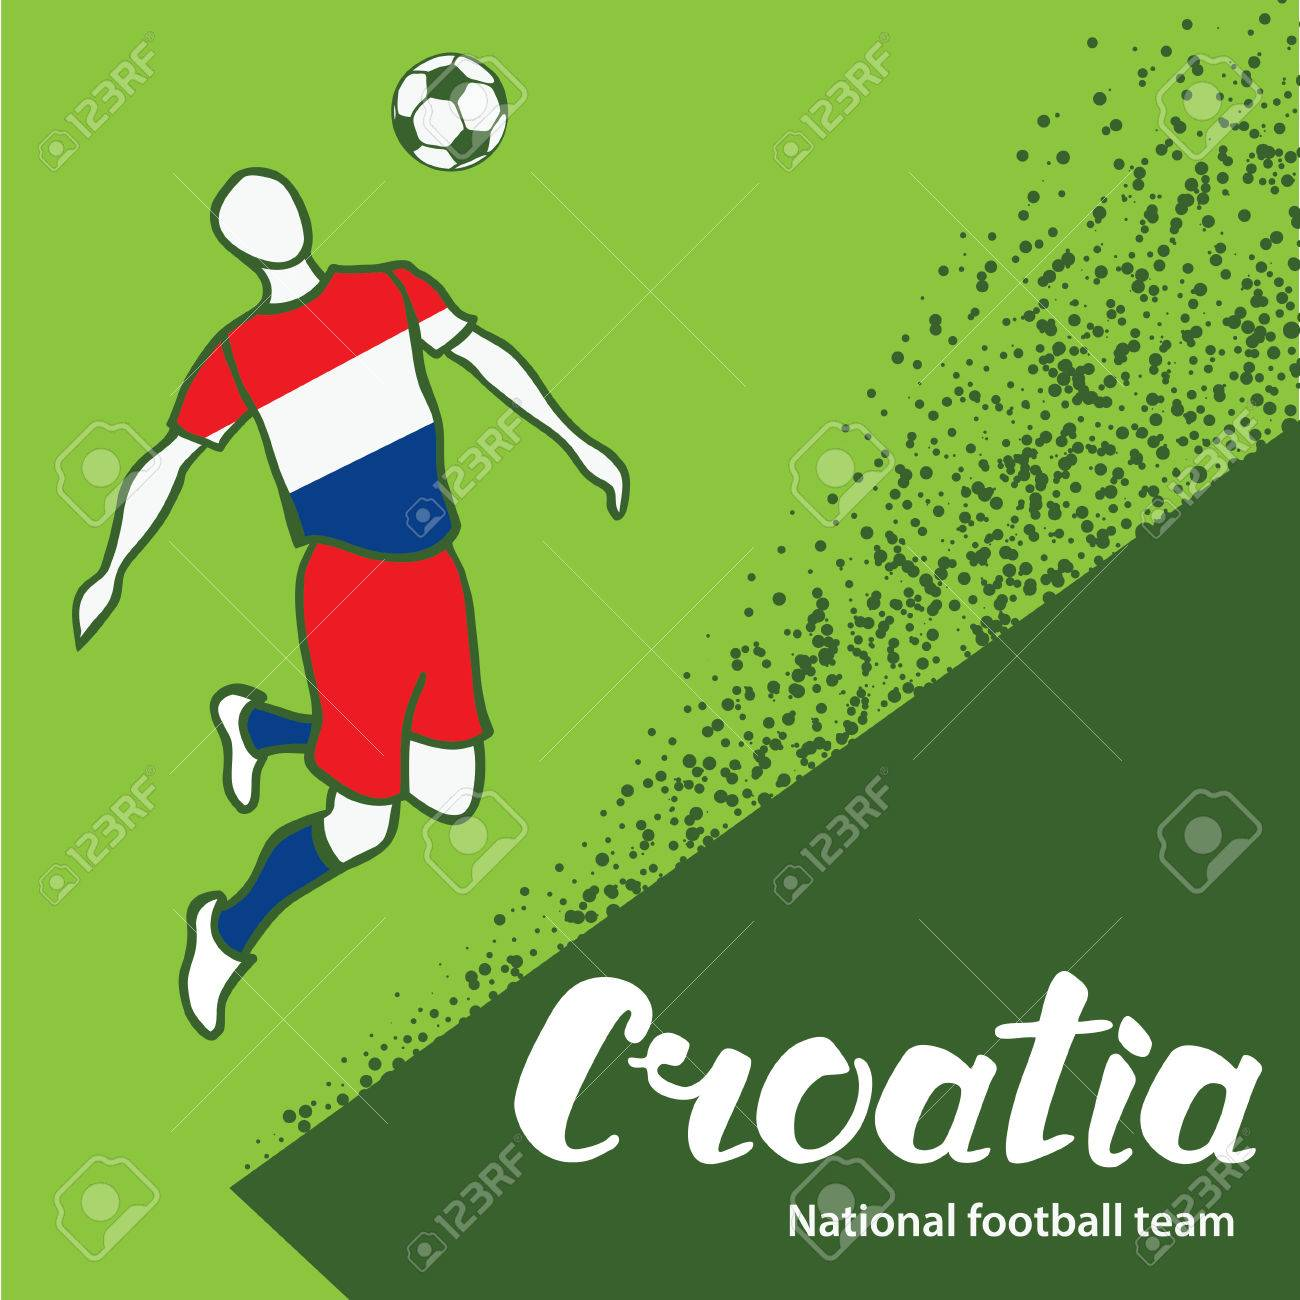 Croatia. National team of Croatia. Vector illustration with the football  player and the ball ea692db30